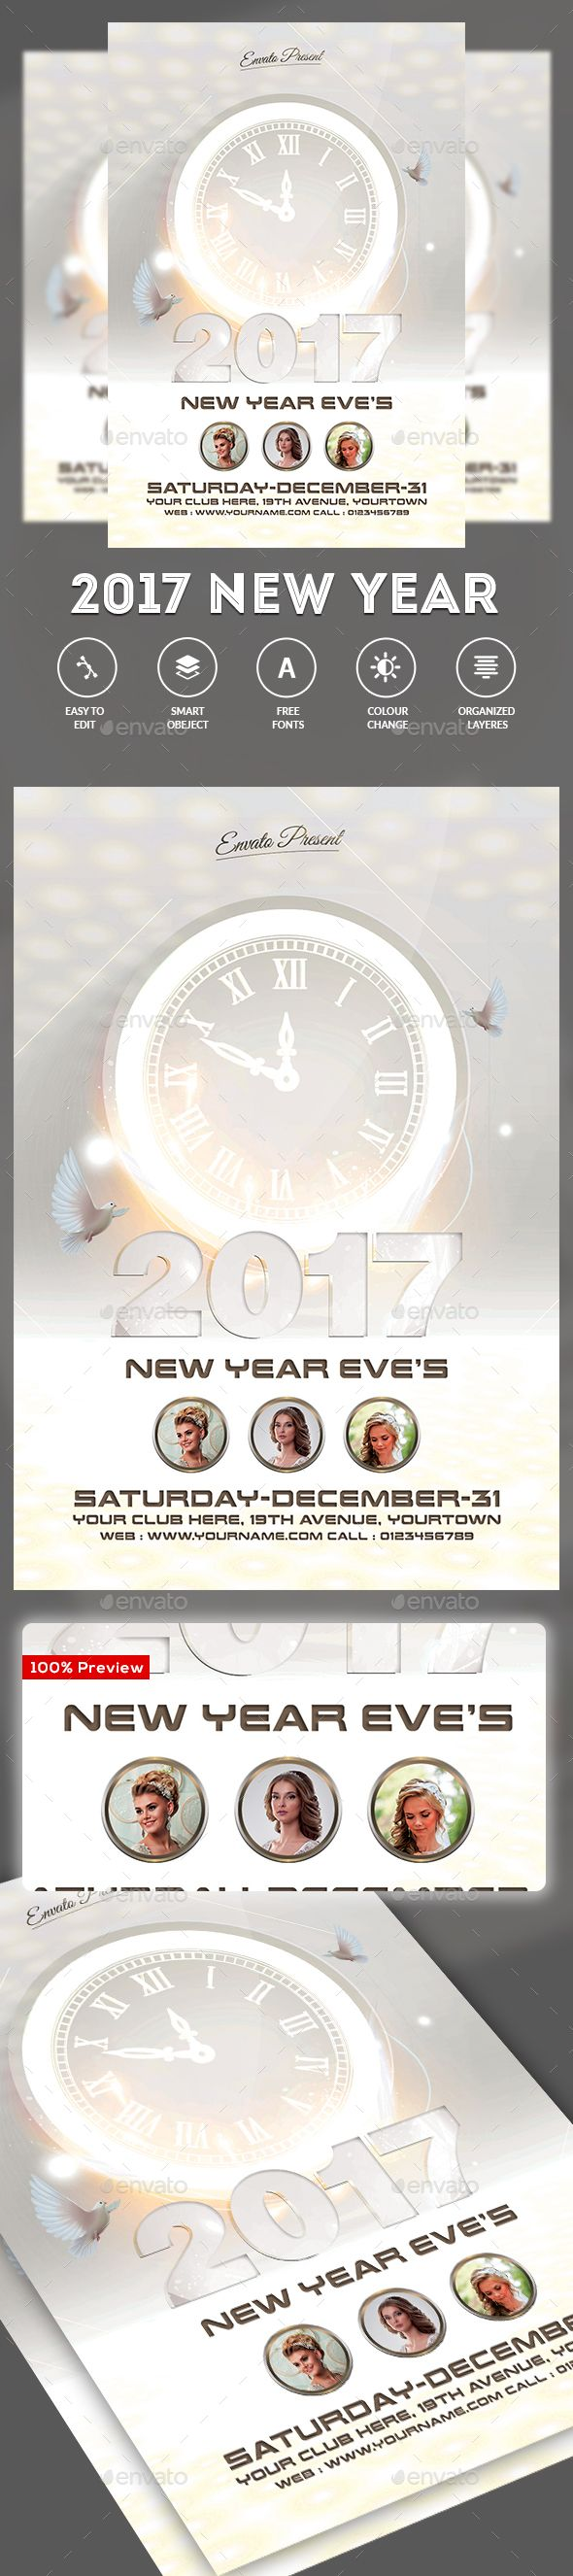 New Years Eve Flyer Template PSD. Download here: https ...